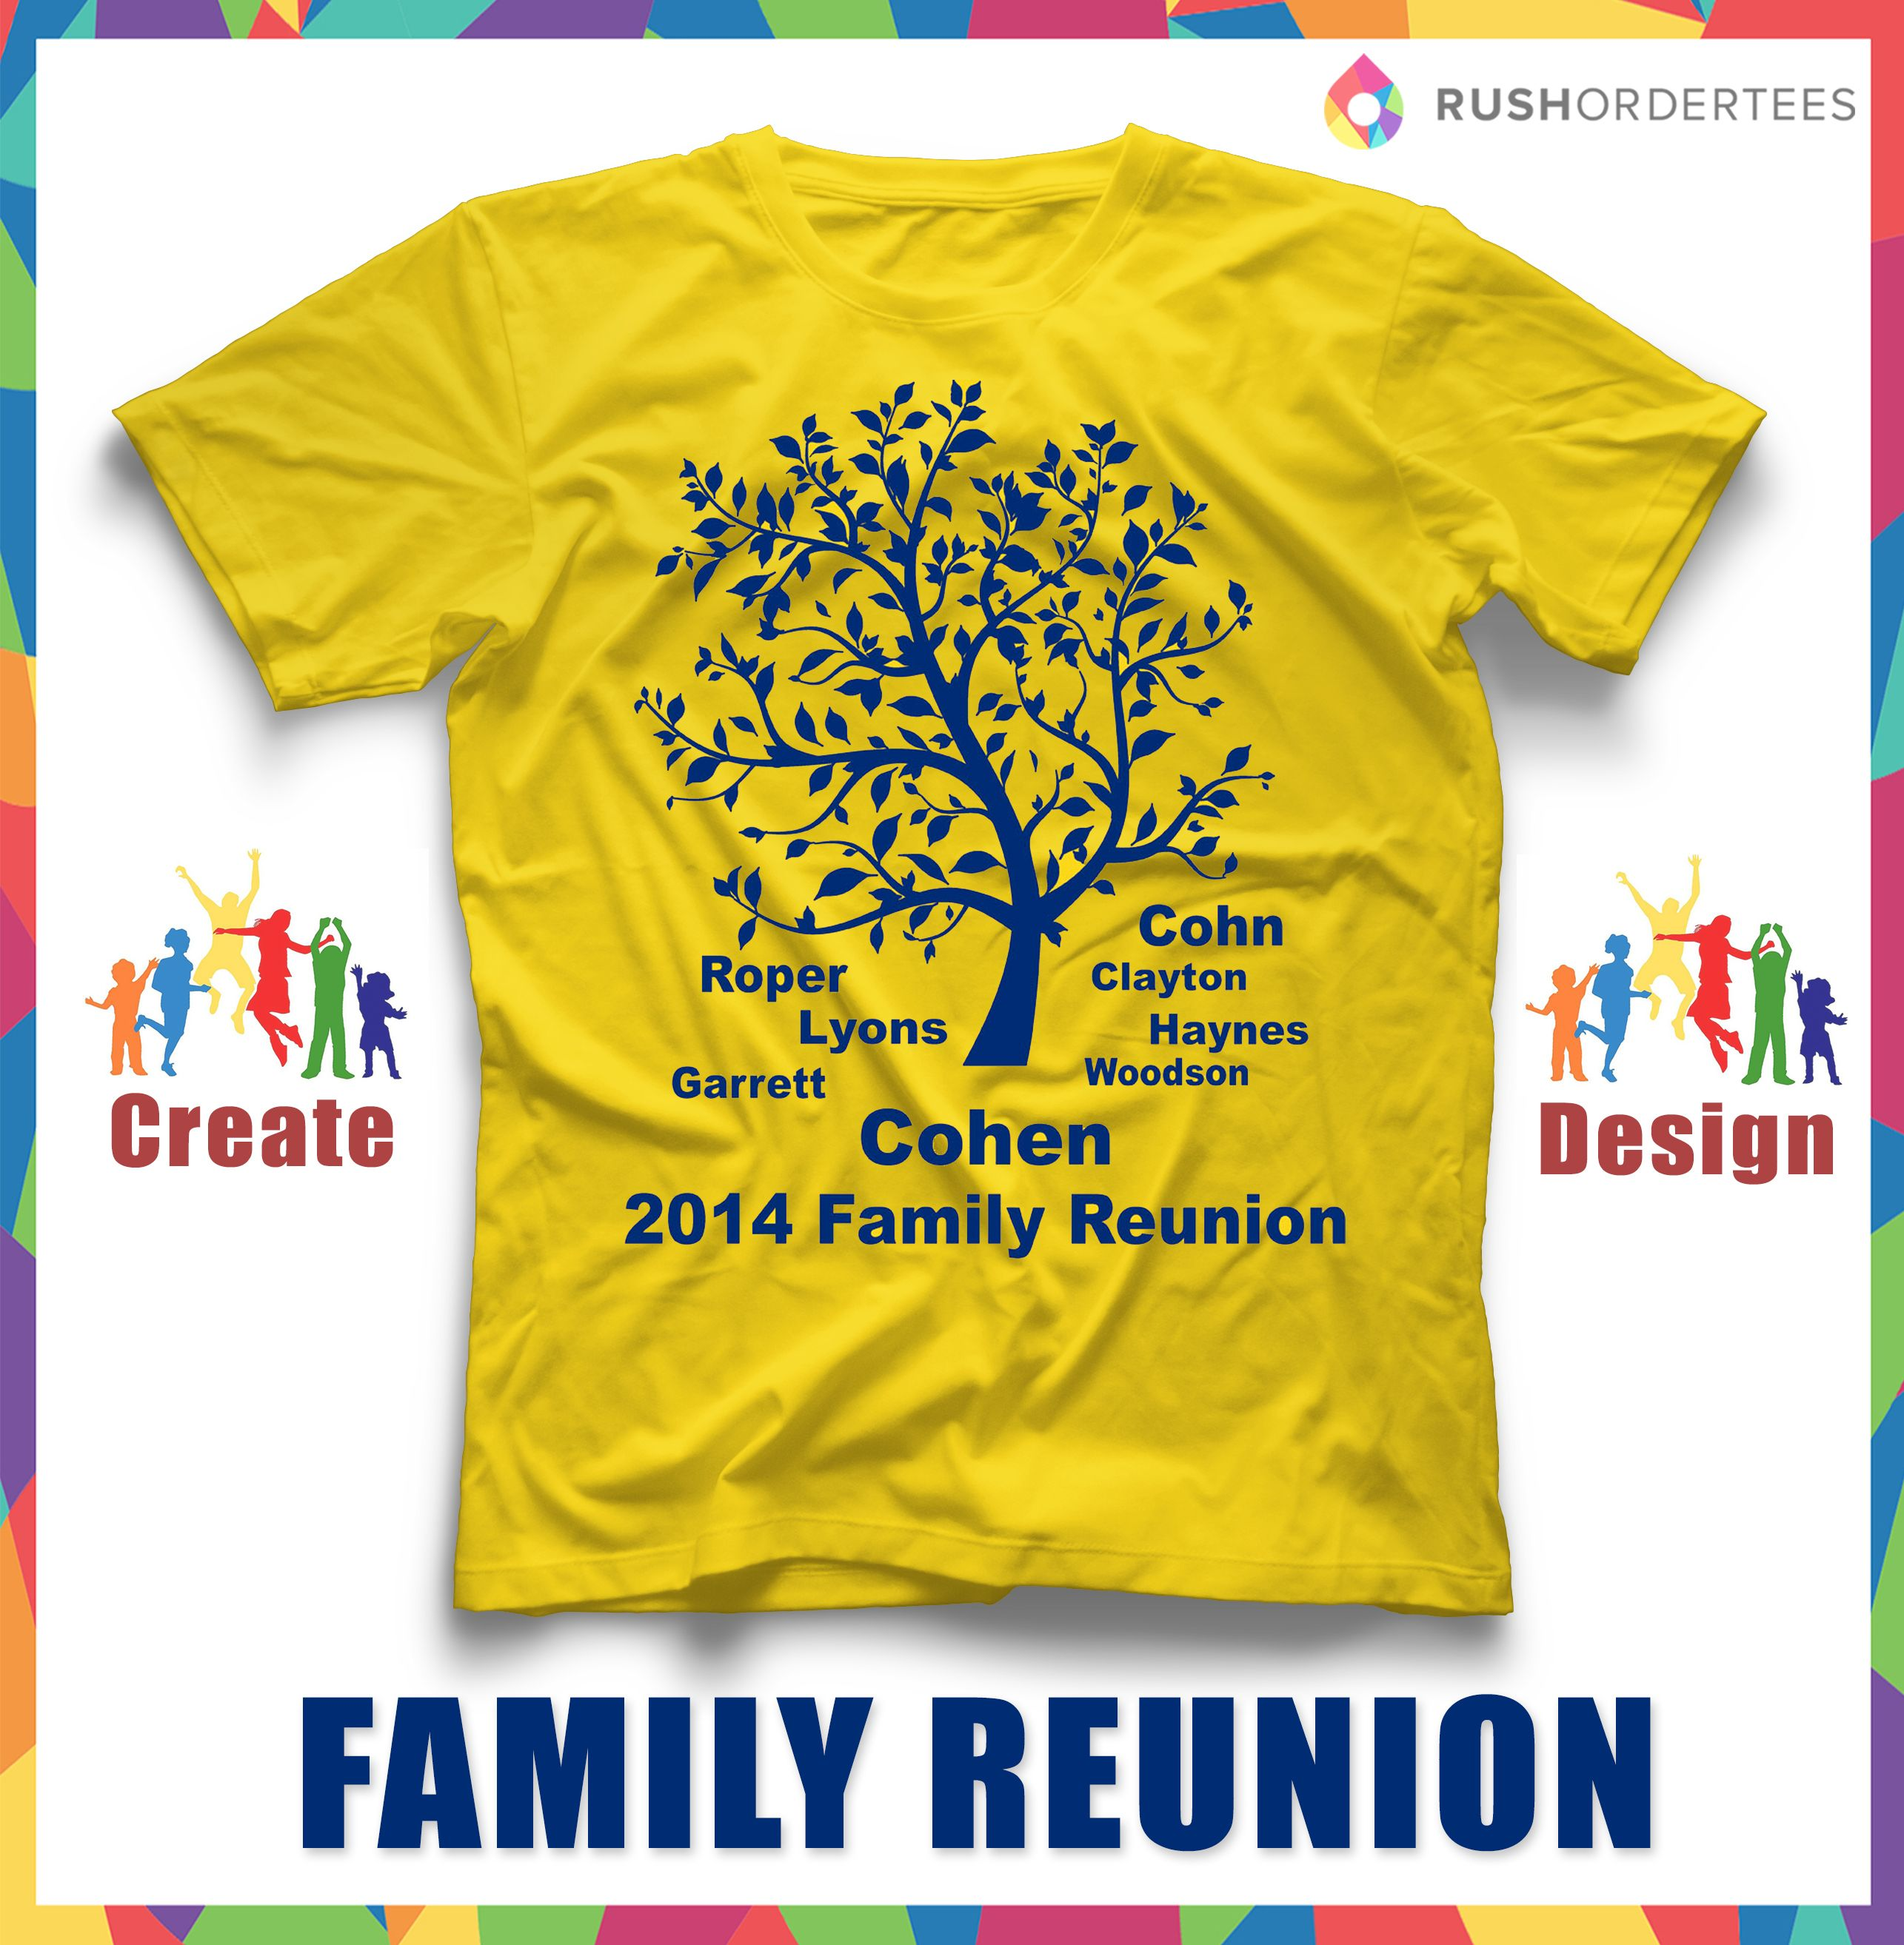 Family Reunion Shirt Design Ideas retro family tree t shirt design family reunion shirt design ideas Family Reunion T Shirt Ideas Create Your Custom Family Reunion T Shirt For